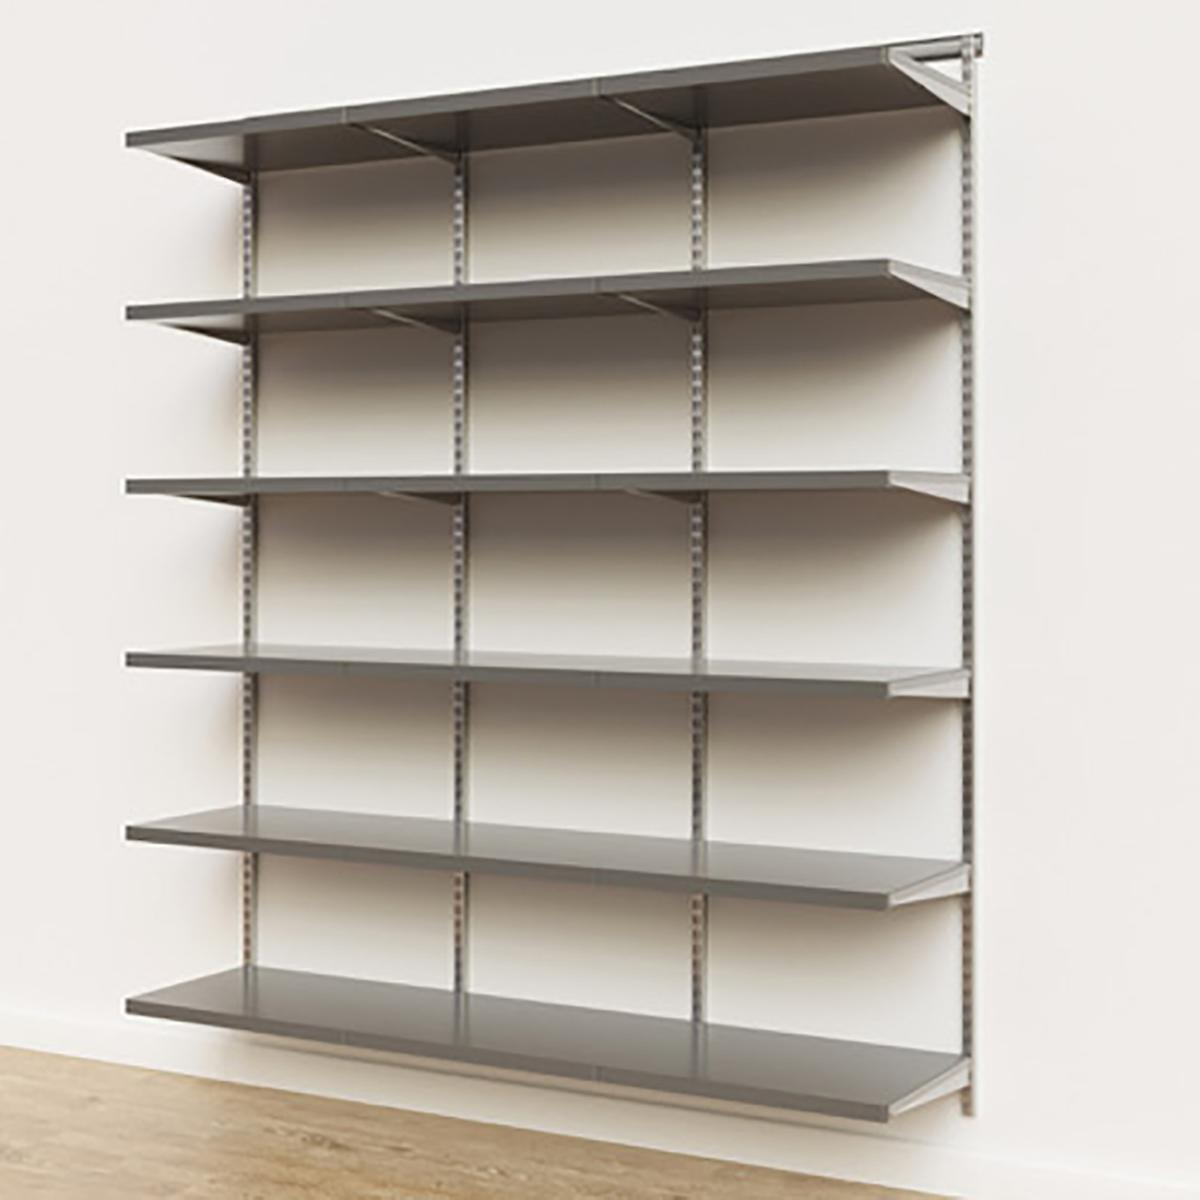 Elfa Décor 6' Platinum & Grey Basic Shelving Units for Anywhere